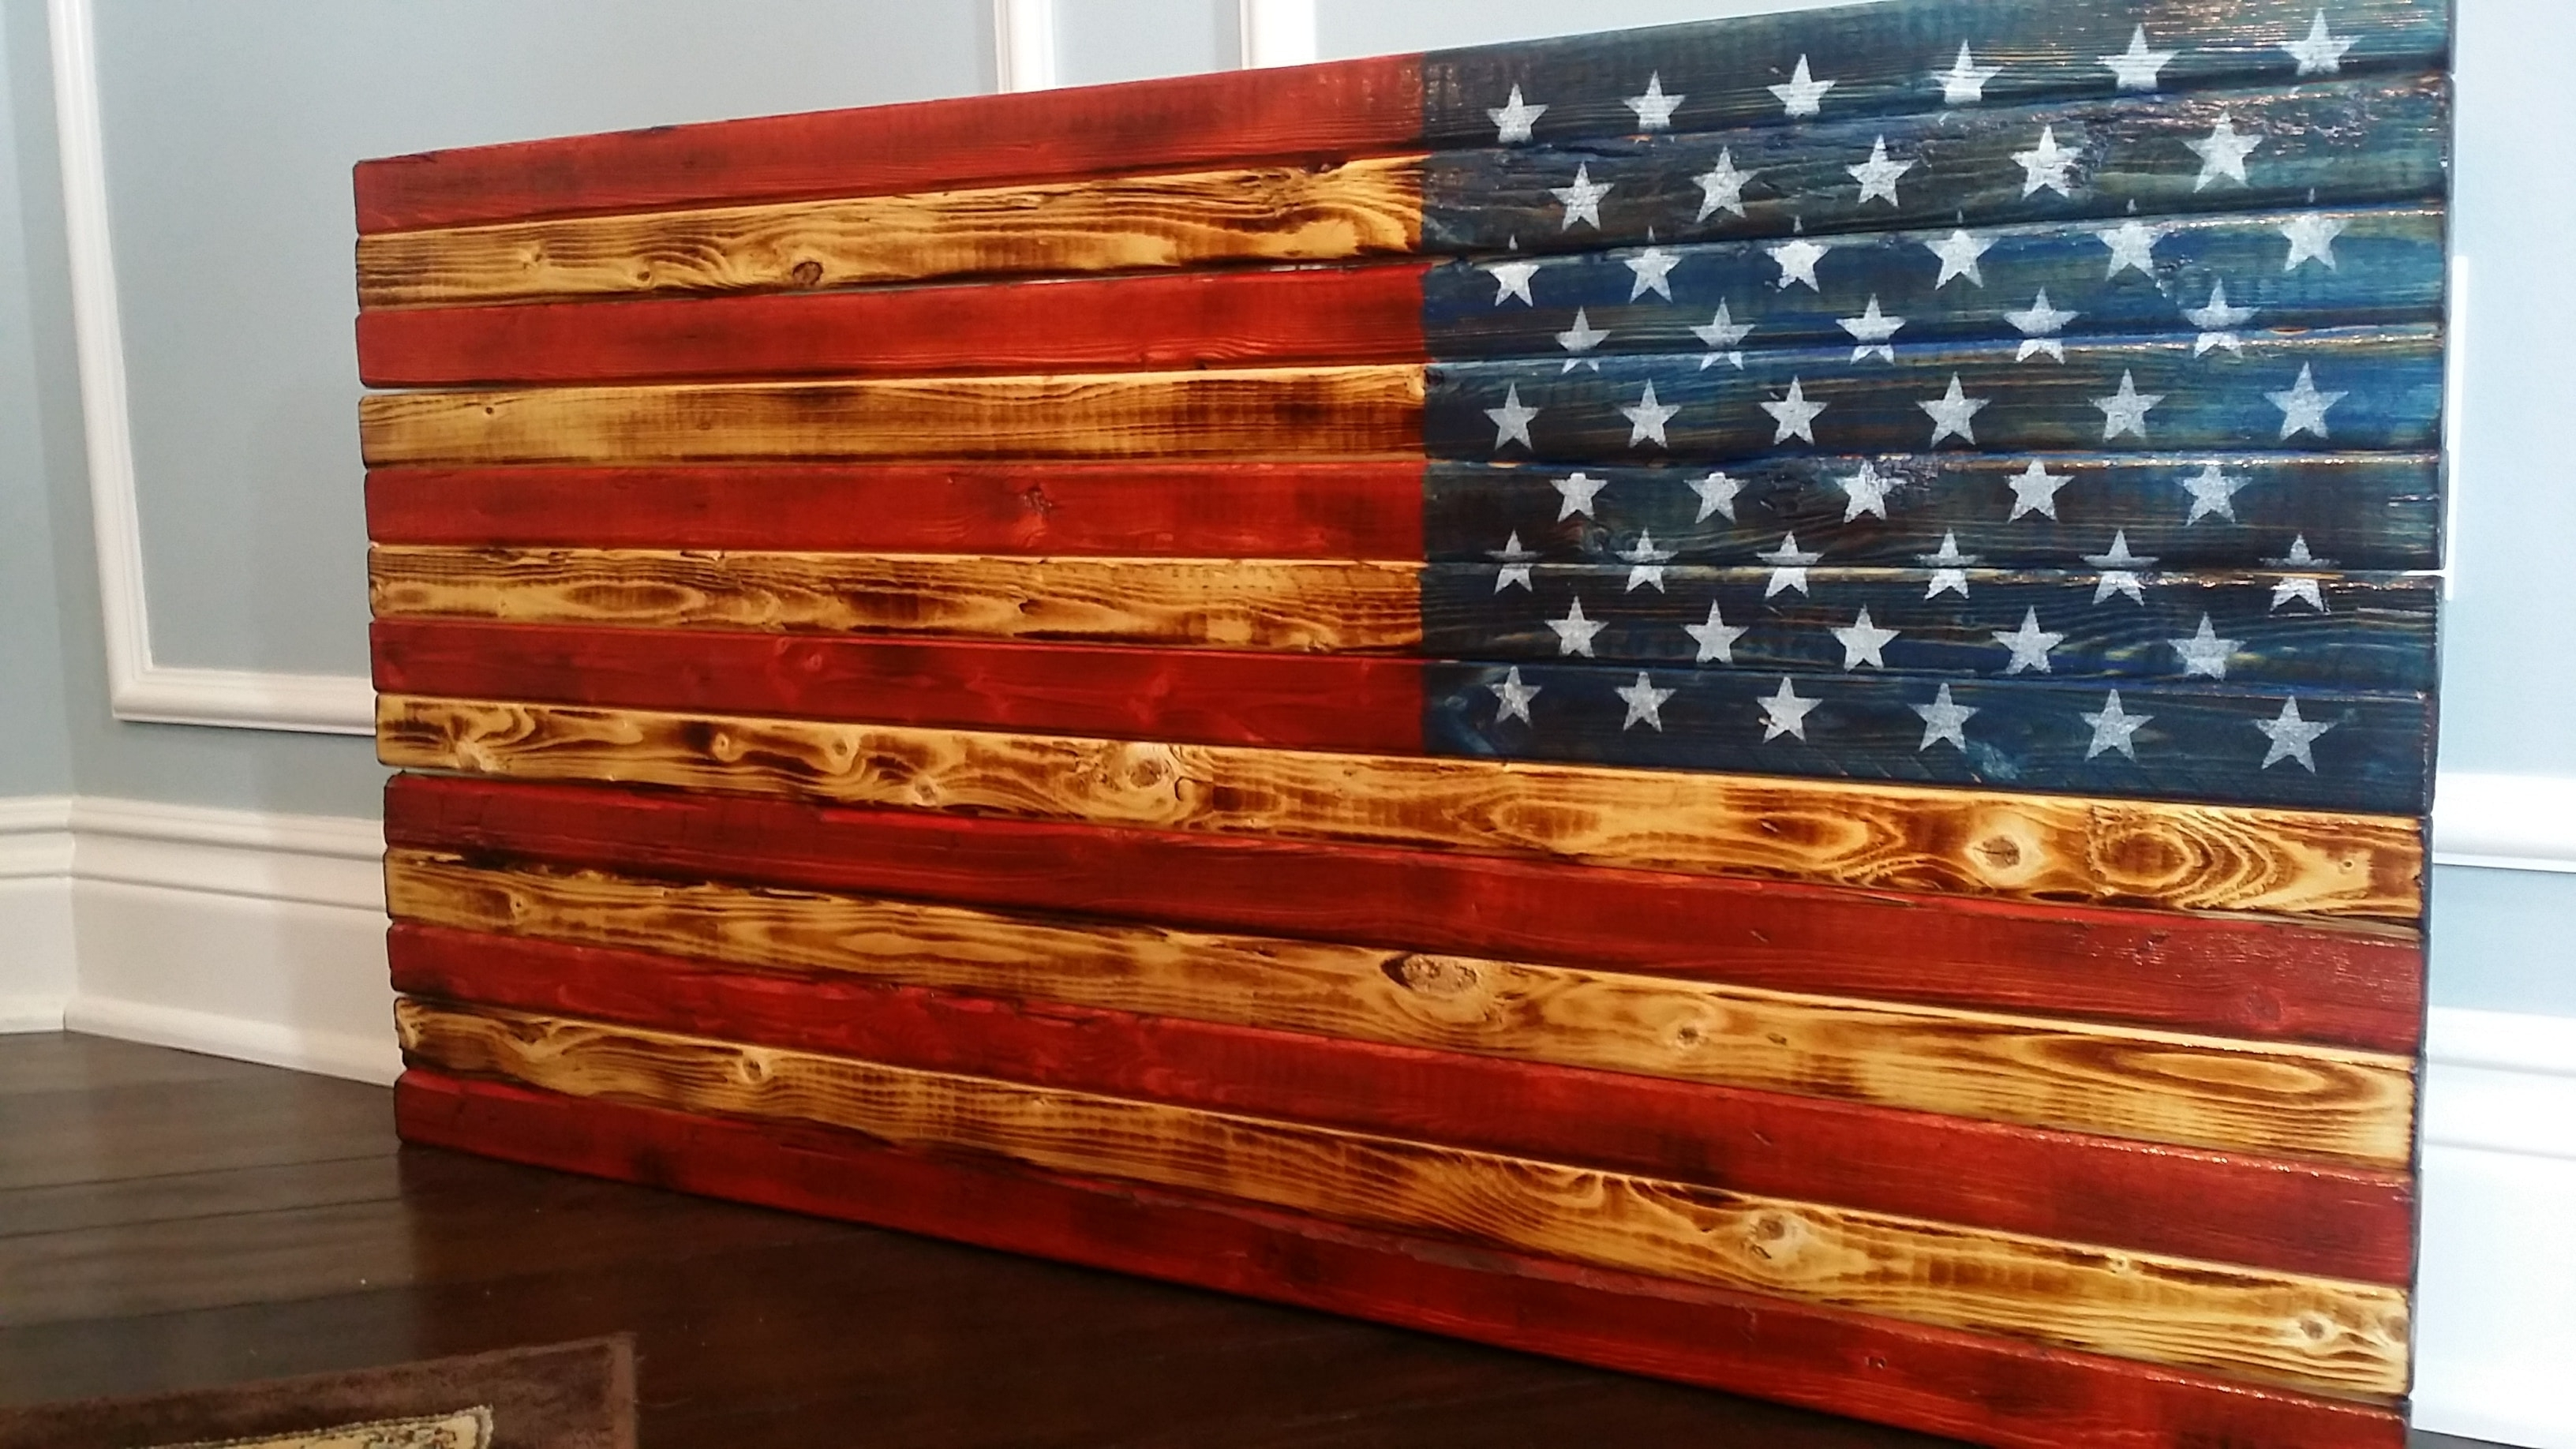 Handmade In Usa, Vintage, Rustic And Distressed Wooden U.s. American Throughout Most Popular Rustic American Flag Wall Art (Gallery 3 of 15)